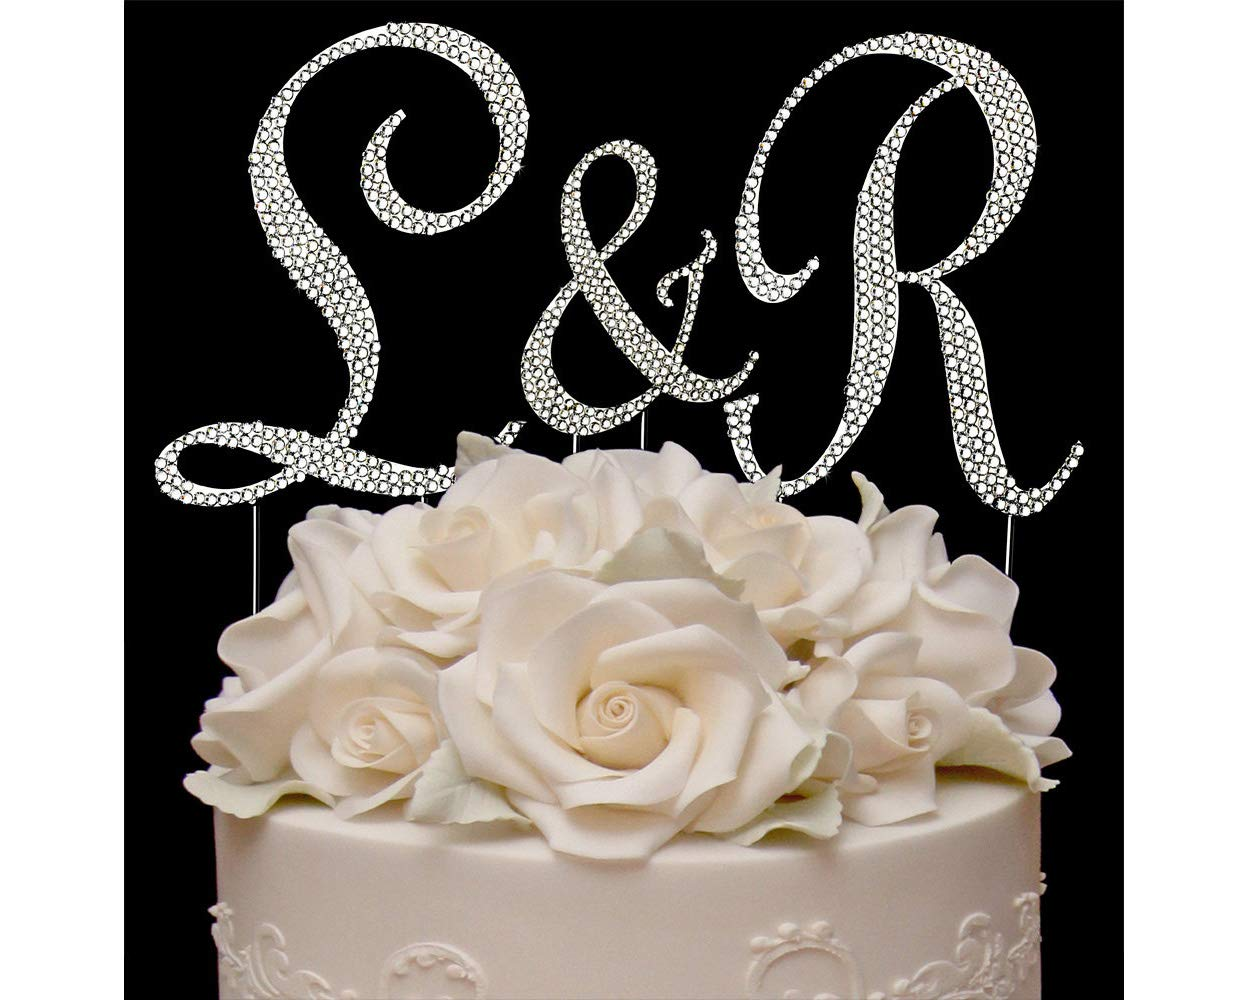 Yacanna Crystal Monogram Wedding Cake Toppers Bling Silver Cake Initials - Set of 3 Letters